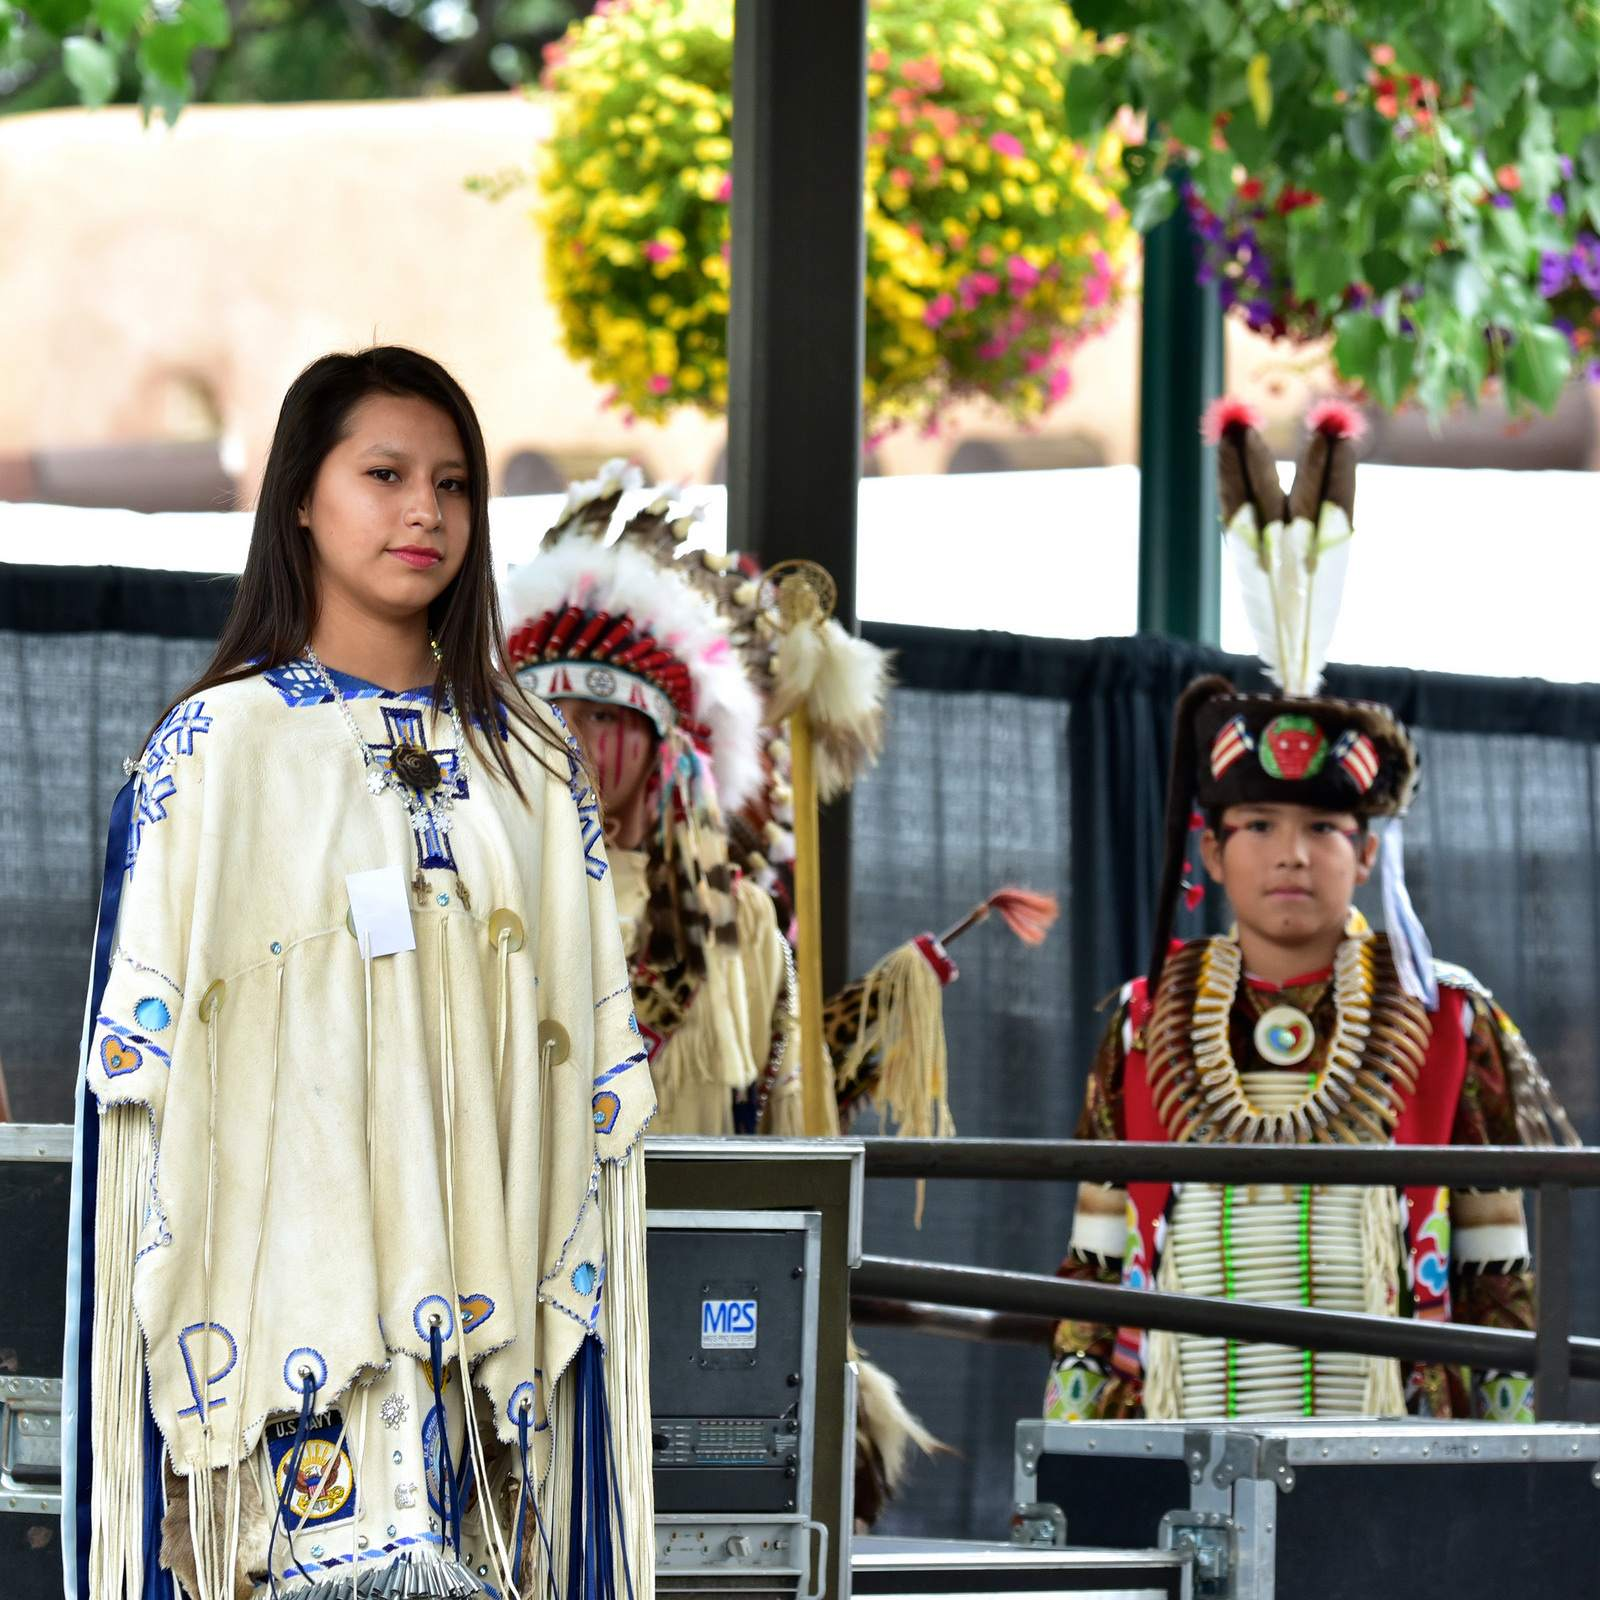 native american clothing2 Native American Clothing Contest at Santa Fe Indian Market